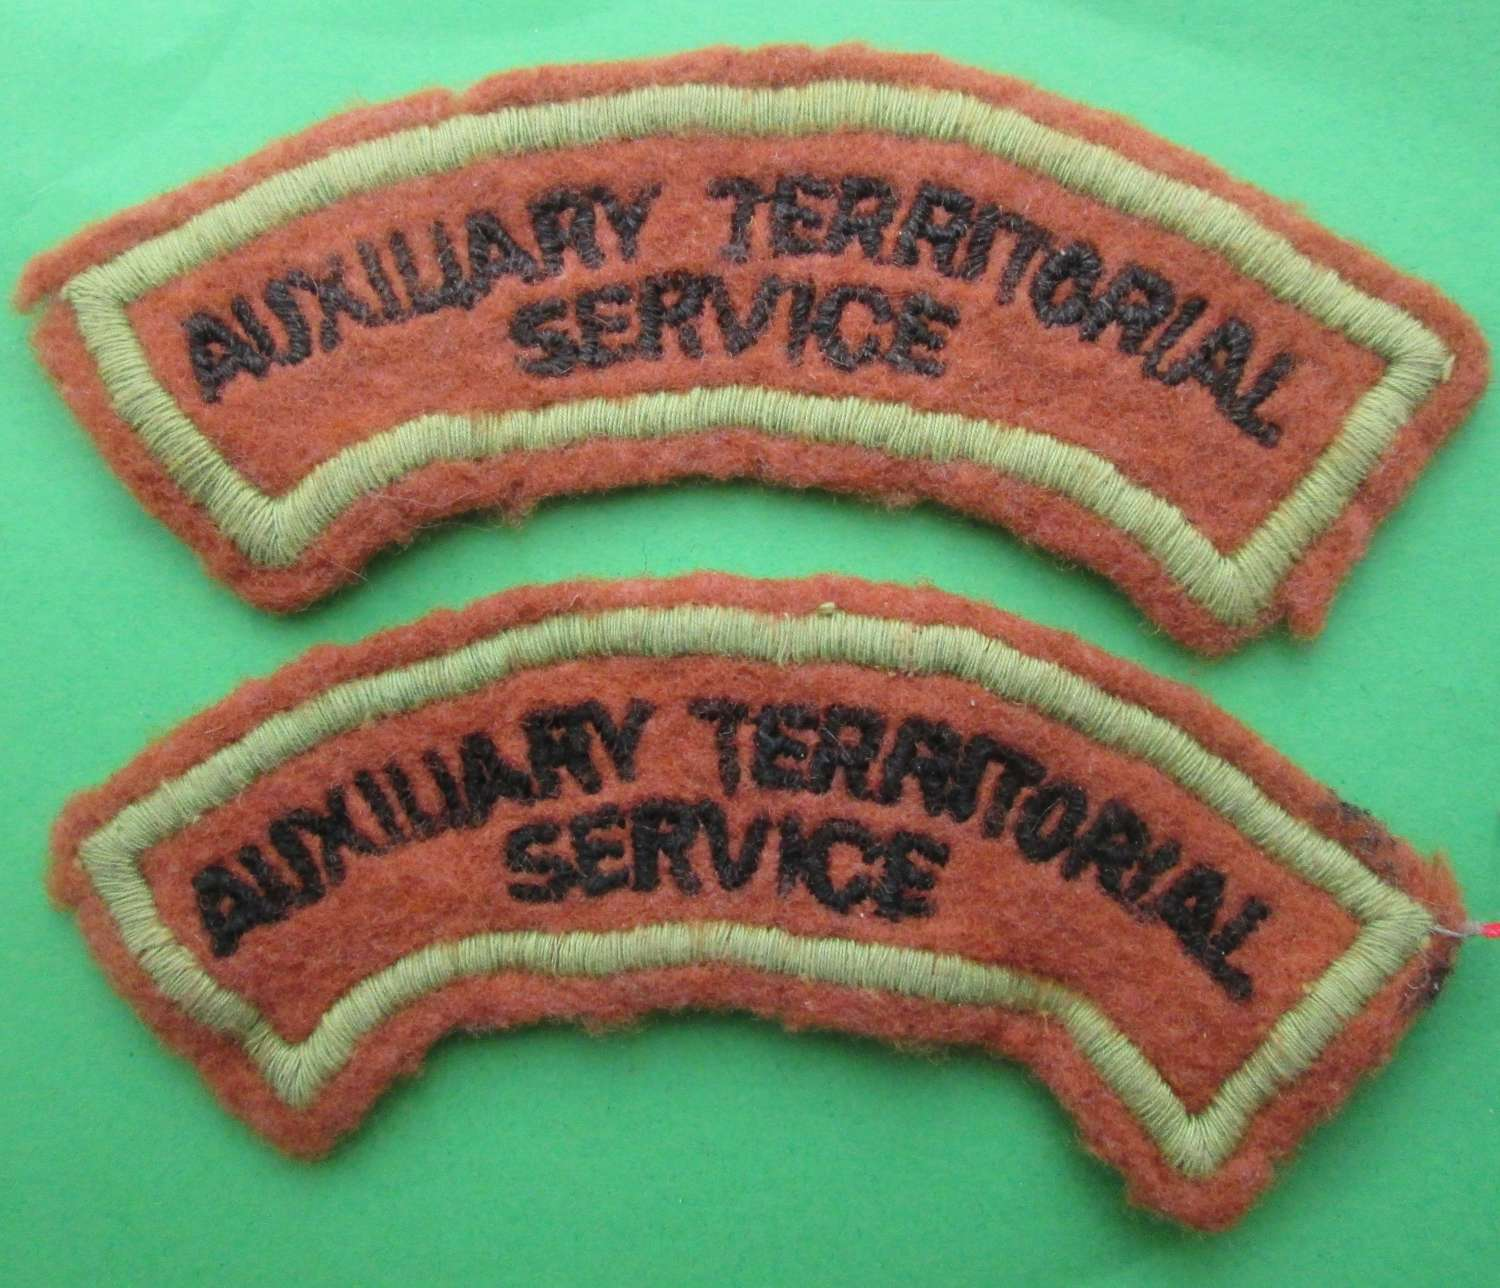 AUXILLIARY TERRITORIAL SERVICE SHOULDER TITLES